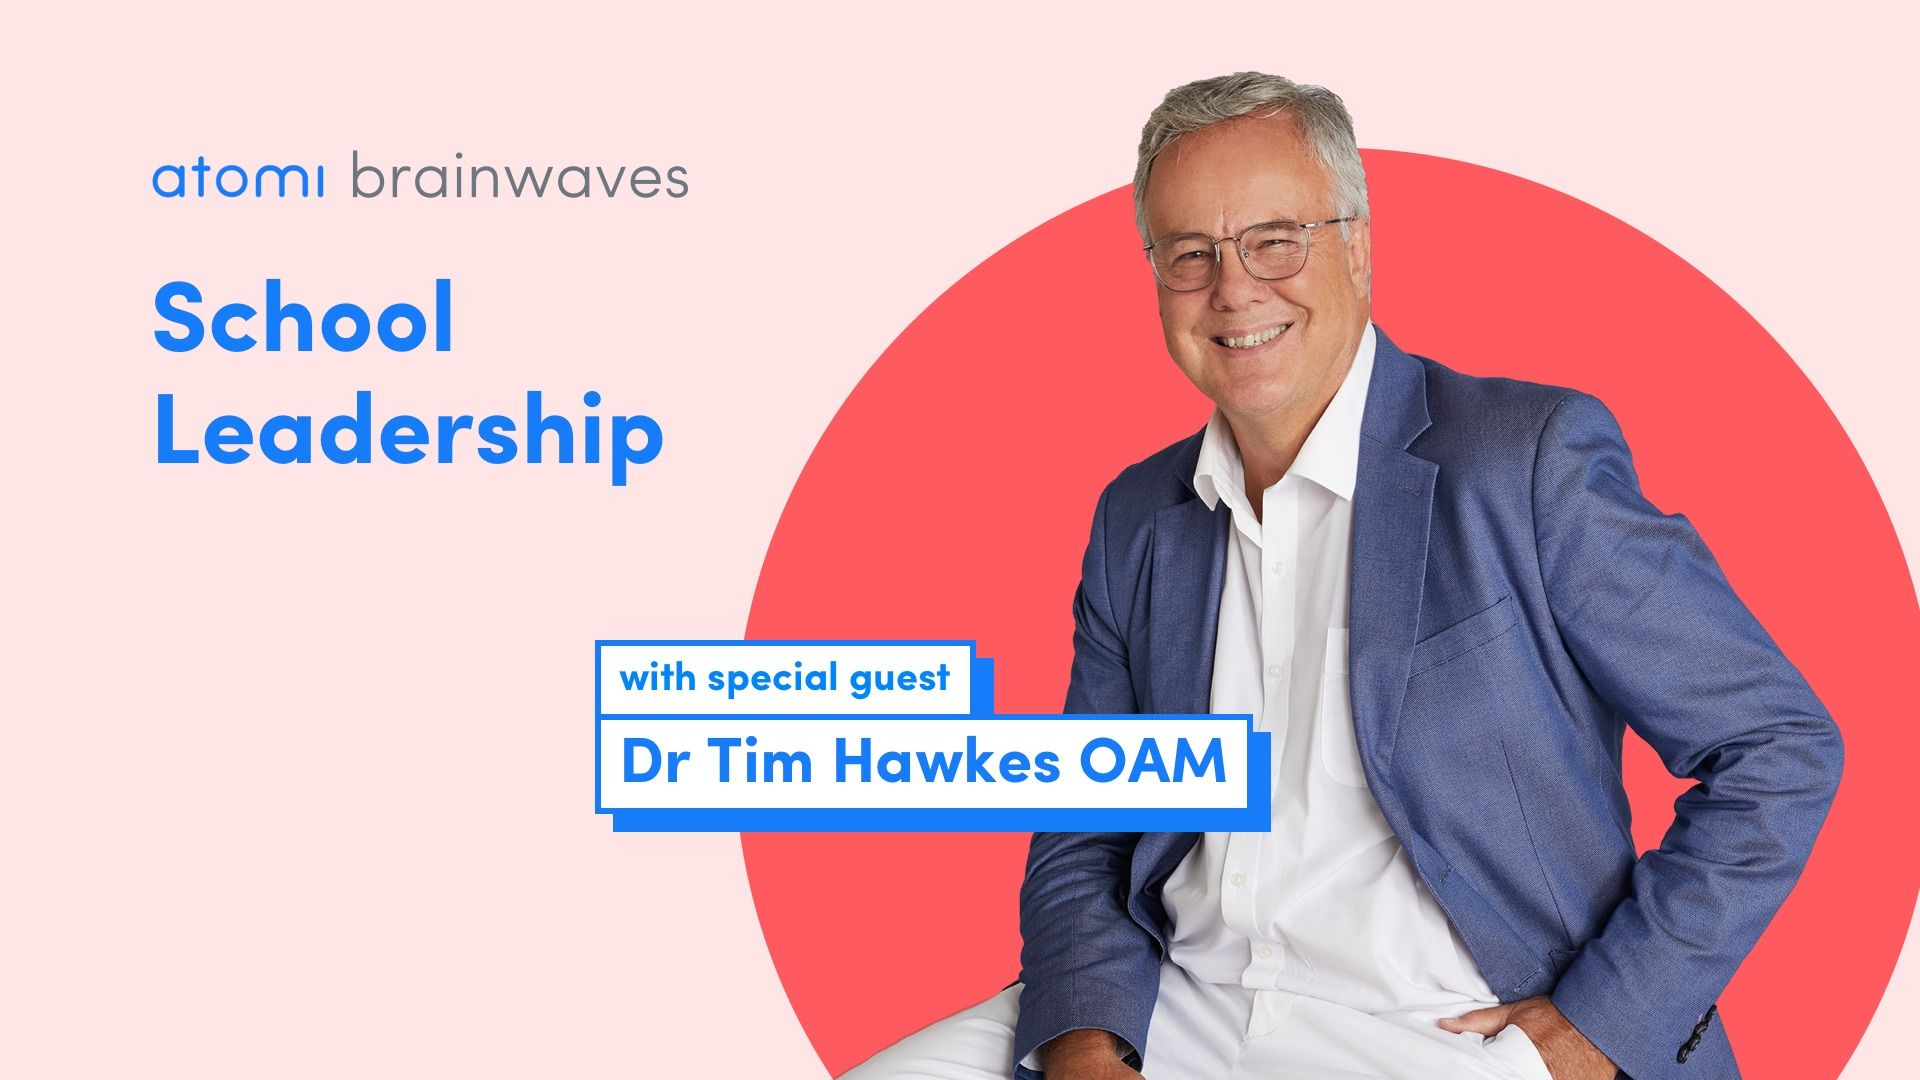 Atomi Brainwaves Podcast S1 E3: Dr Tim Hawkes OAM on School Leadership